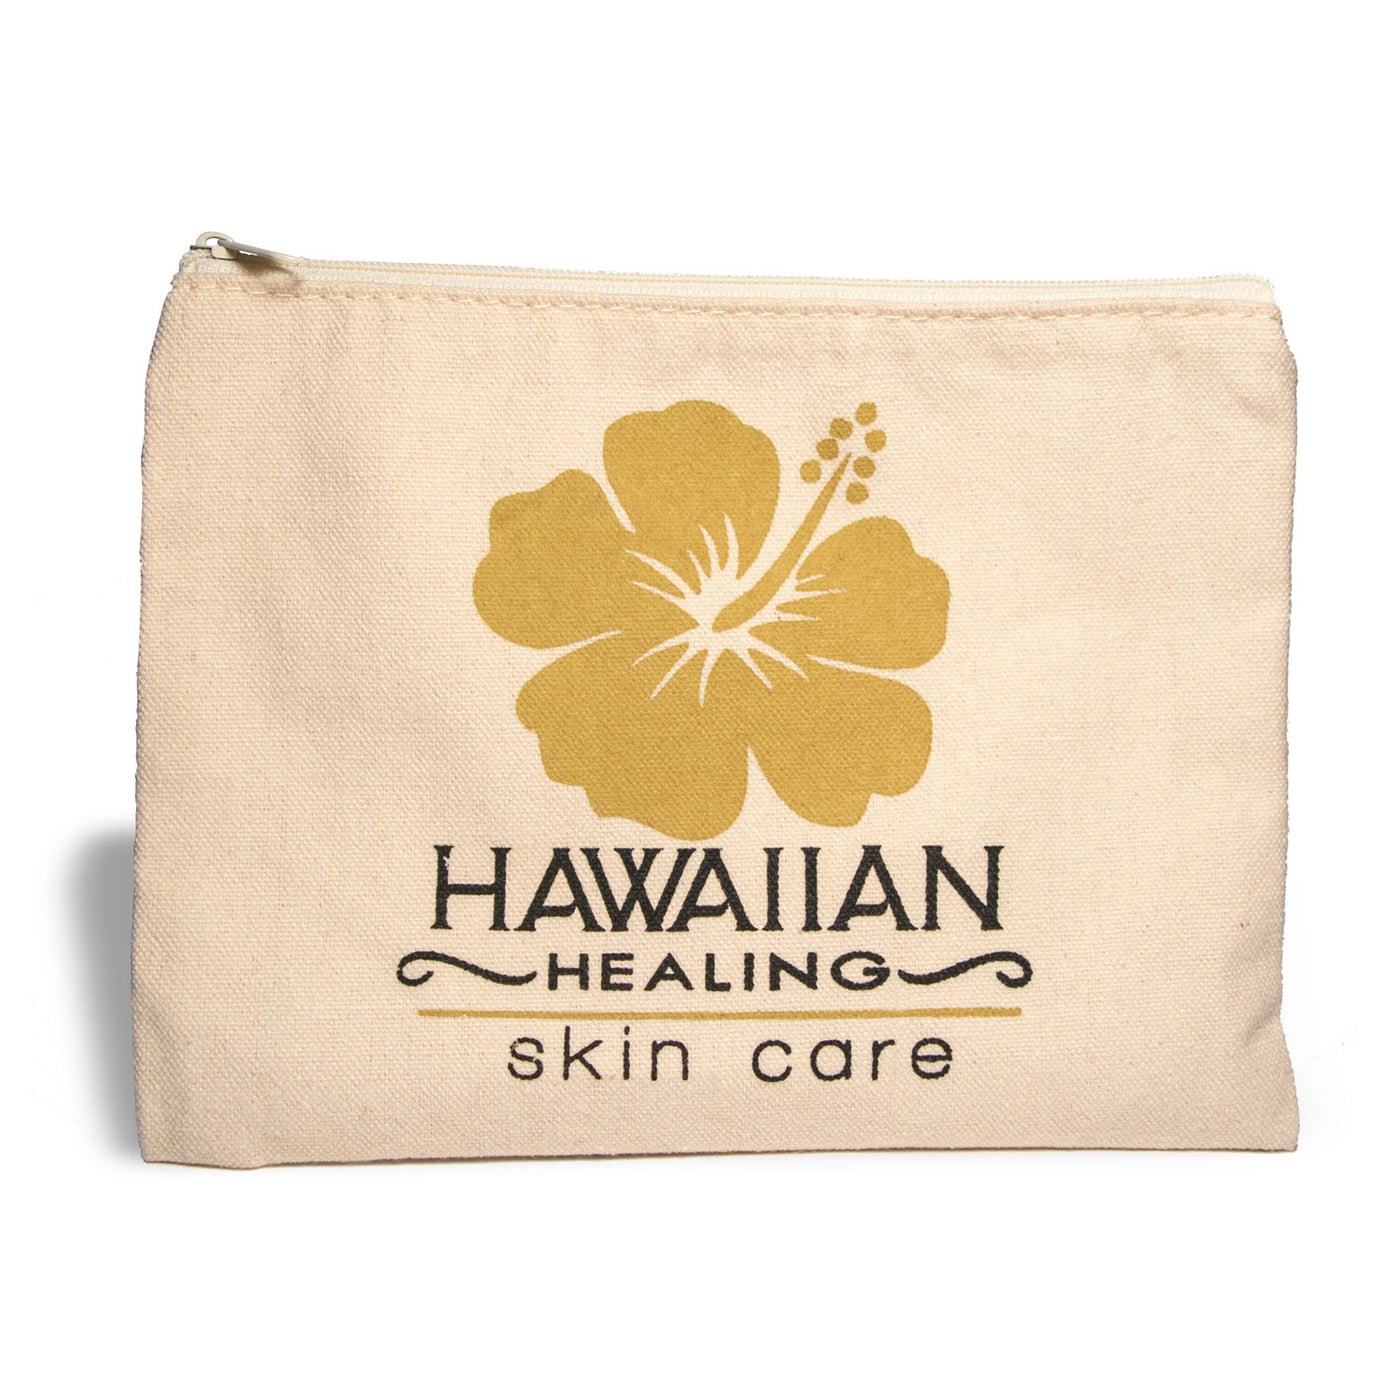 New Hawaiian Healing On-The-Go (OTG) Travel Kit - Hawaiian Healing